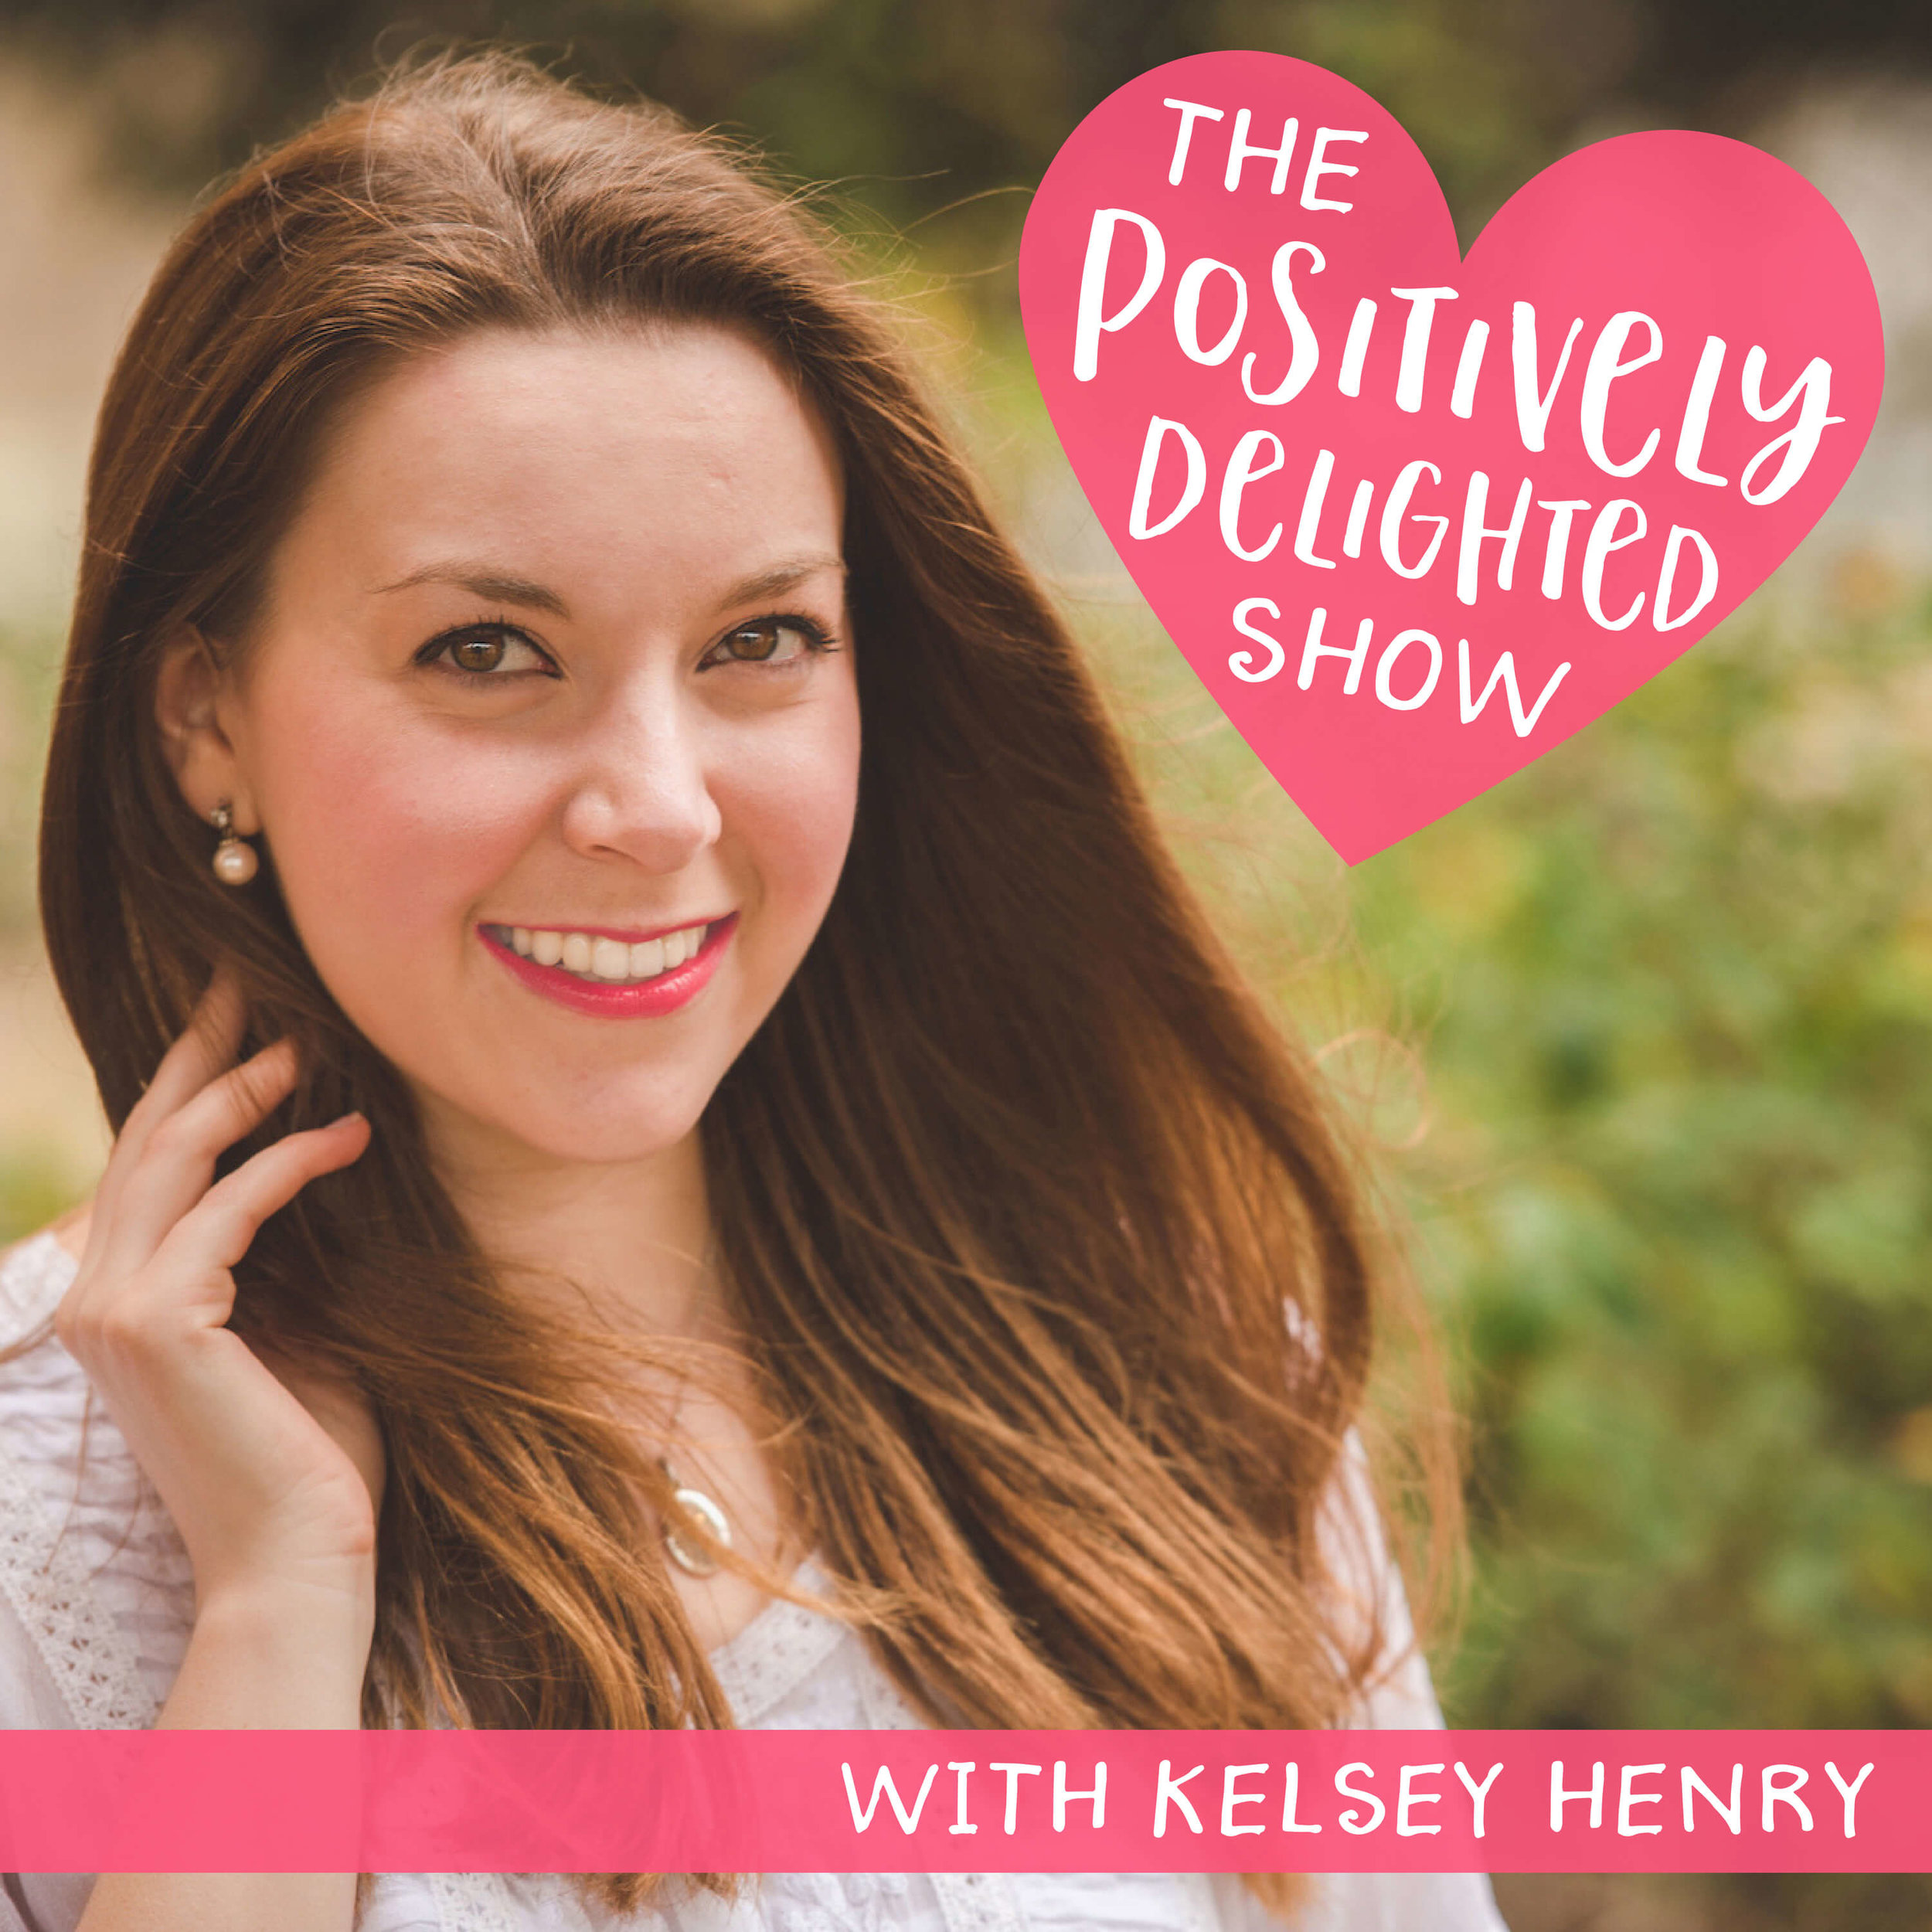 The Positively Delighted Show Artwork Final.jpg